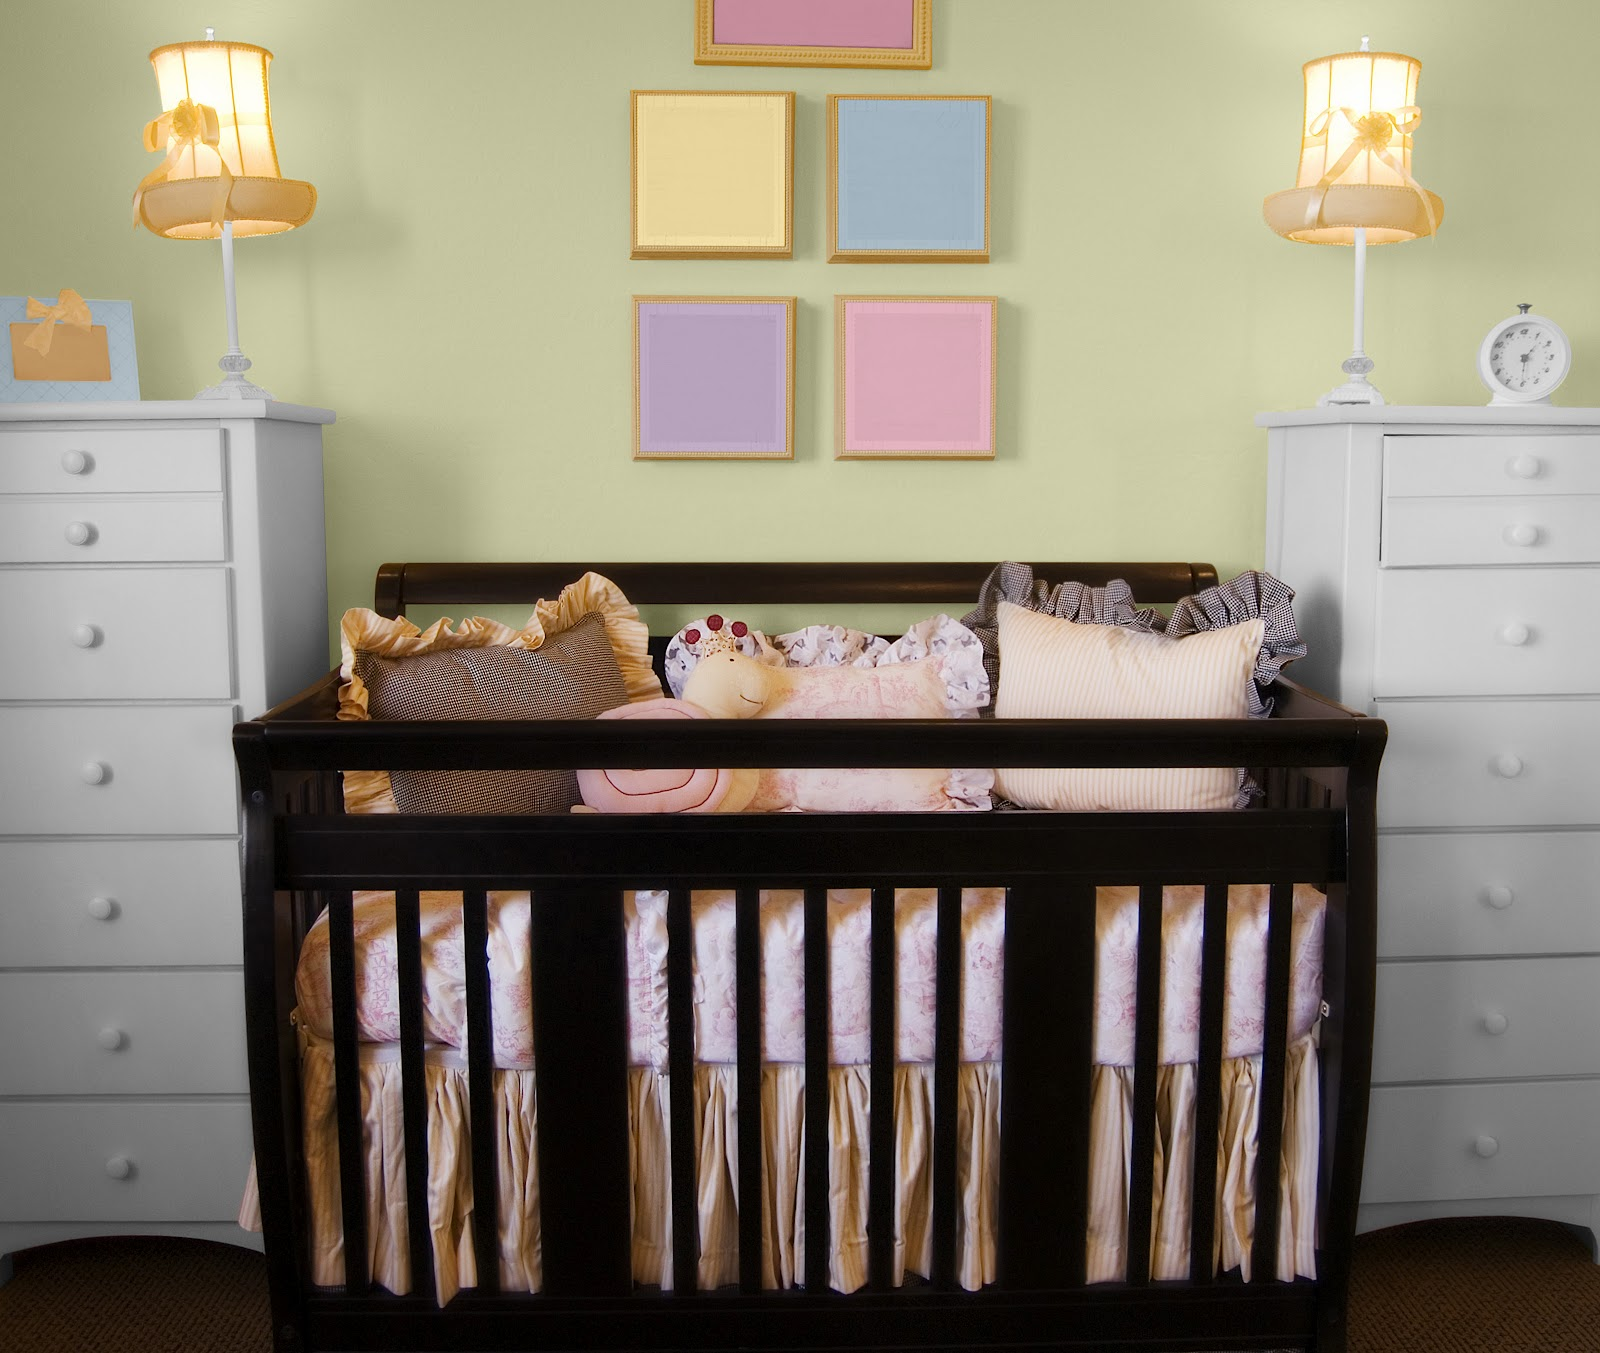 Top 10 baby nursery room colors and decorating ideas for Baby girl nursery mural